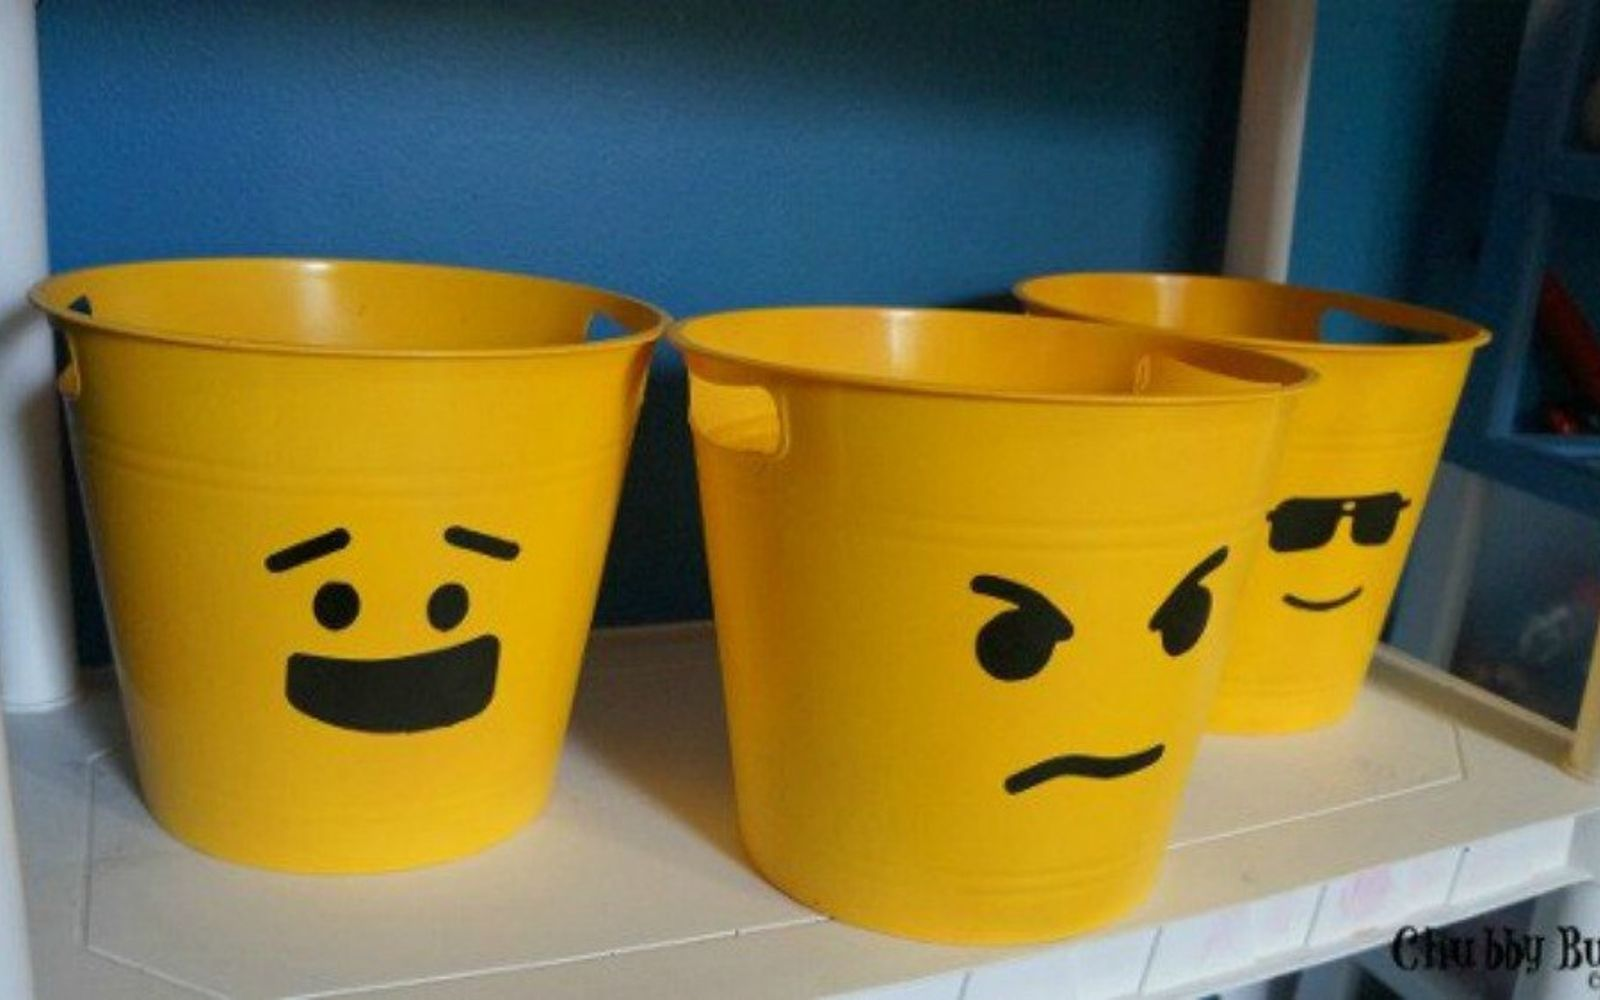 s you need to try these dollar store bucket ideas, Turn them into customized Lego containers